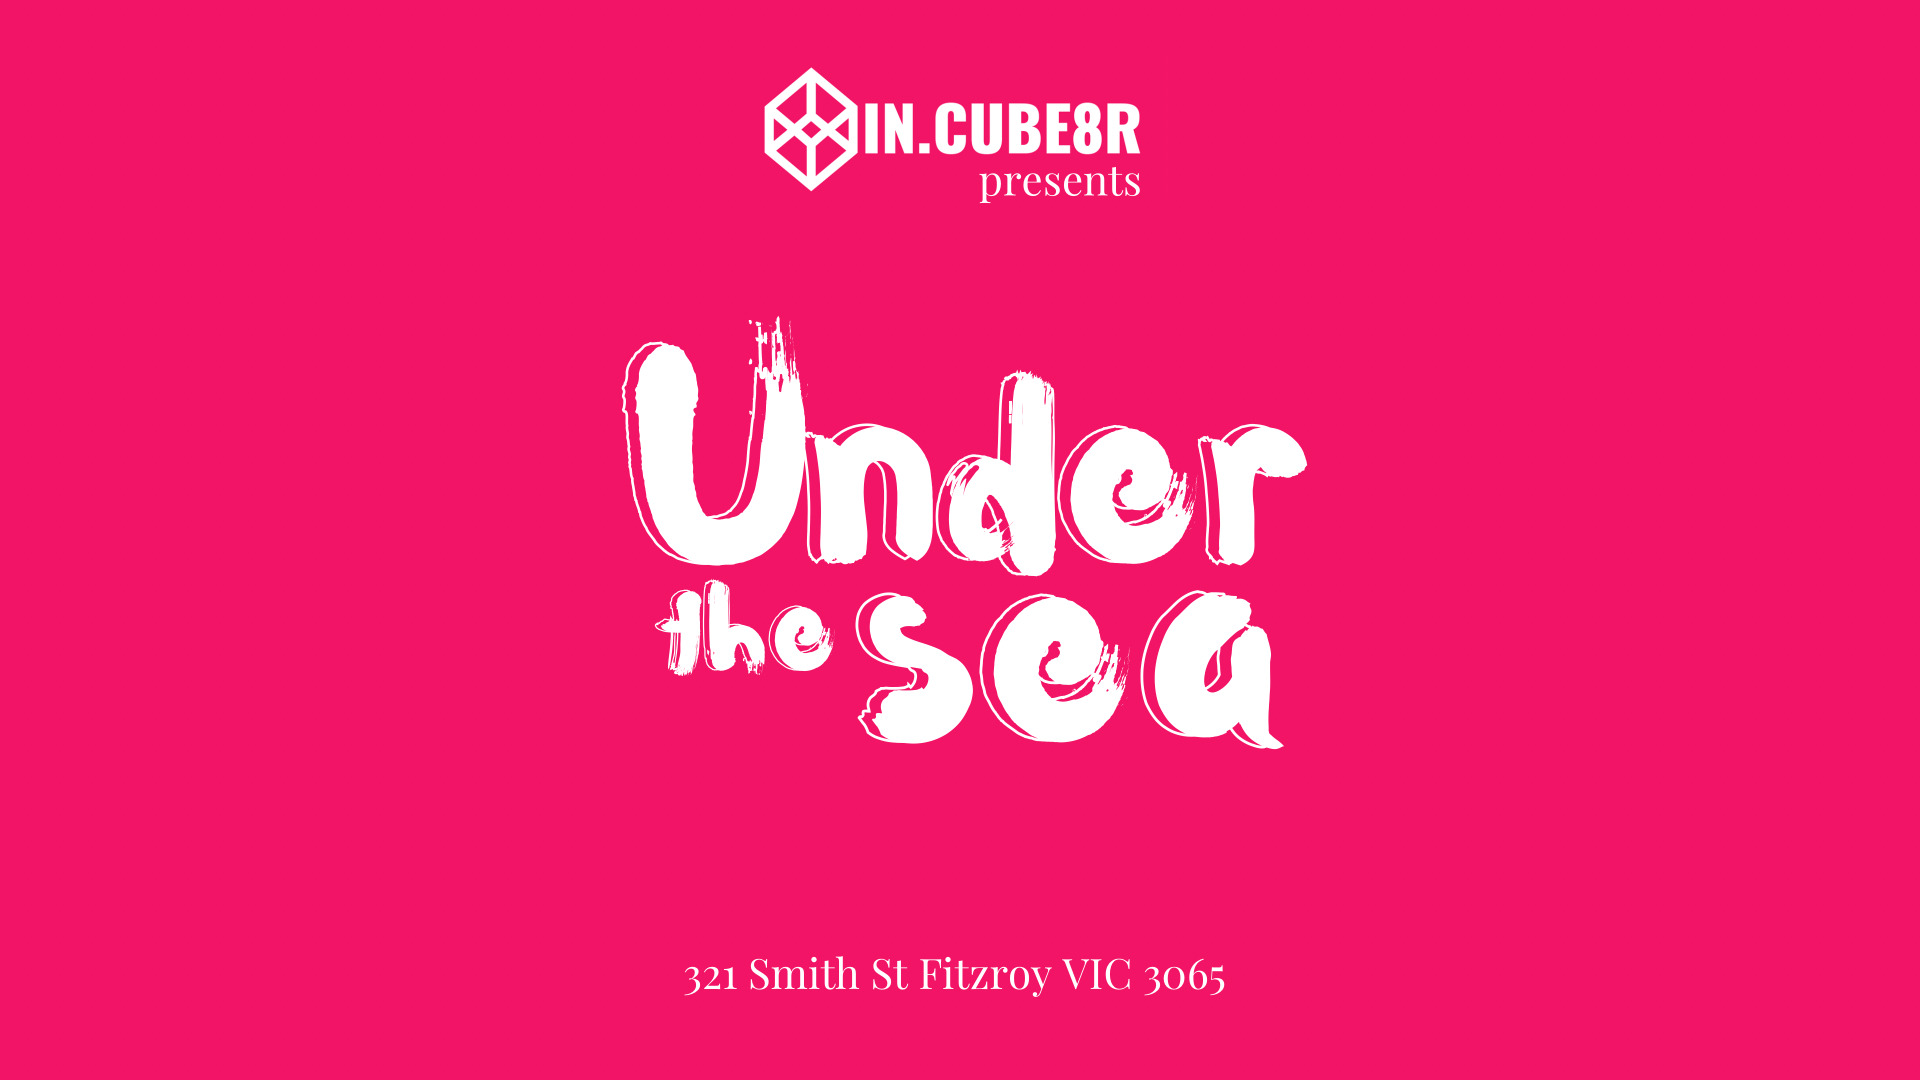 under-the-sea-call-for-artists ellemay.michael 683927